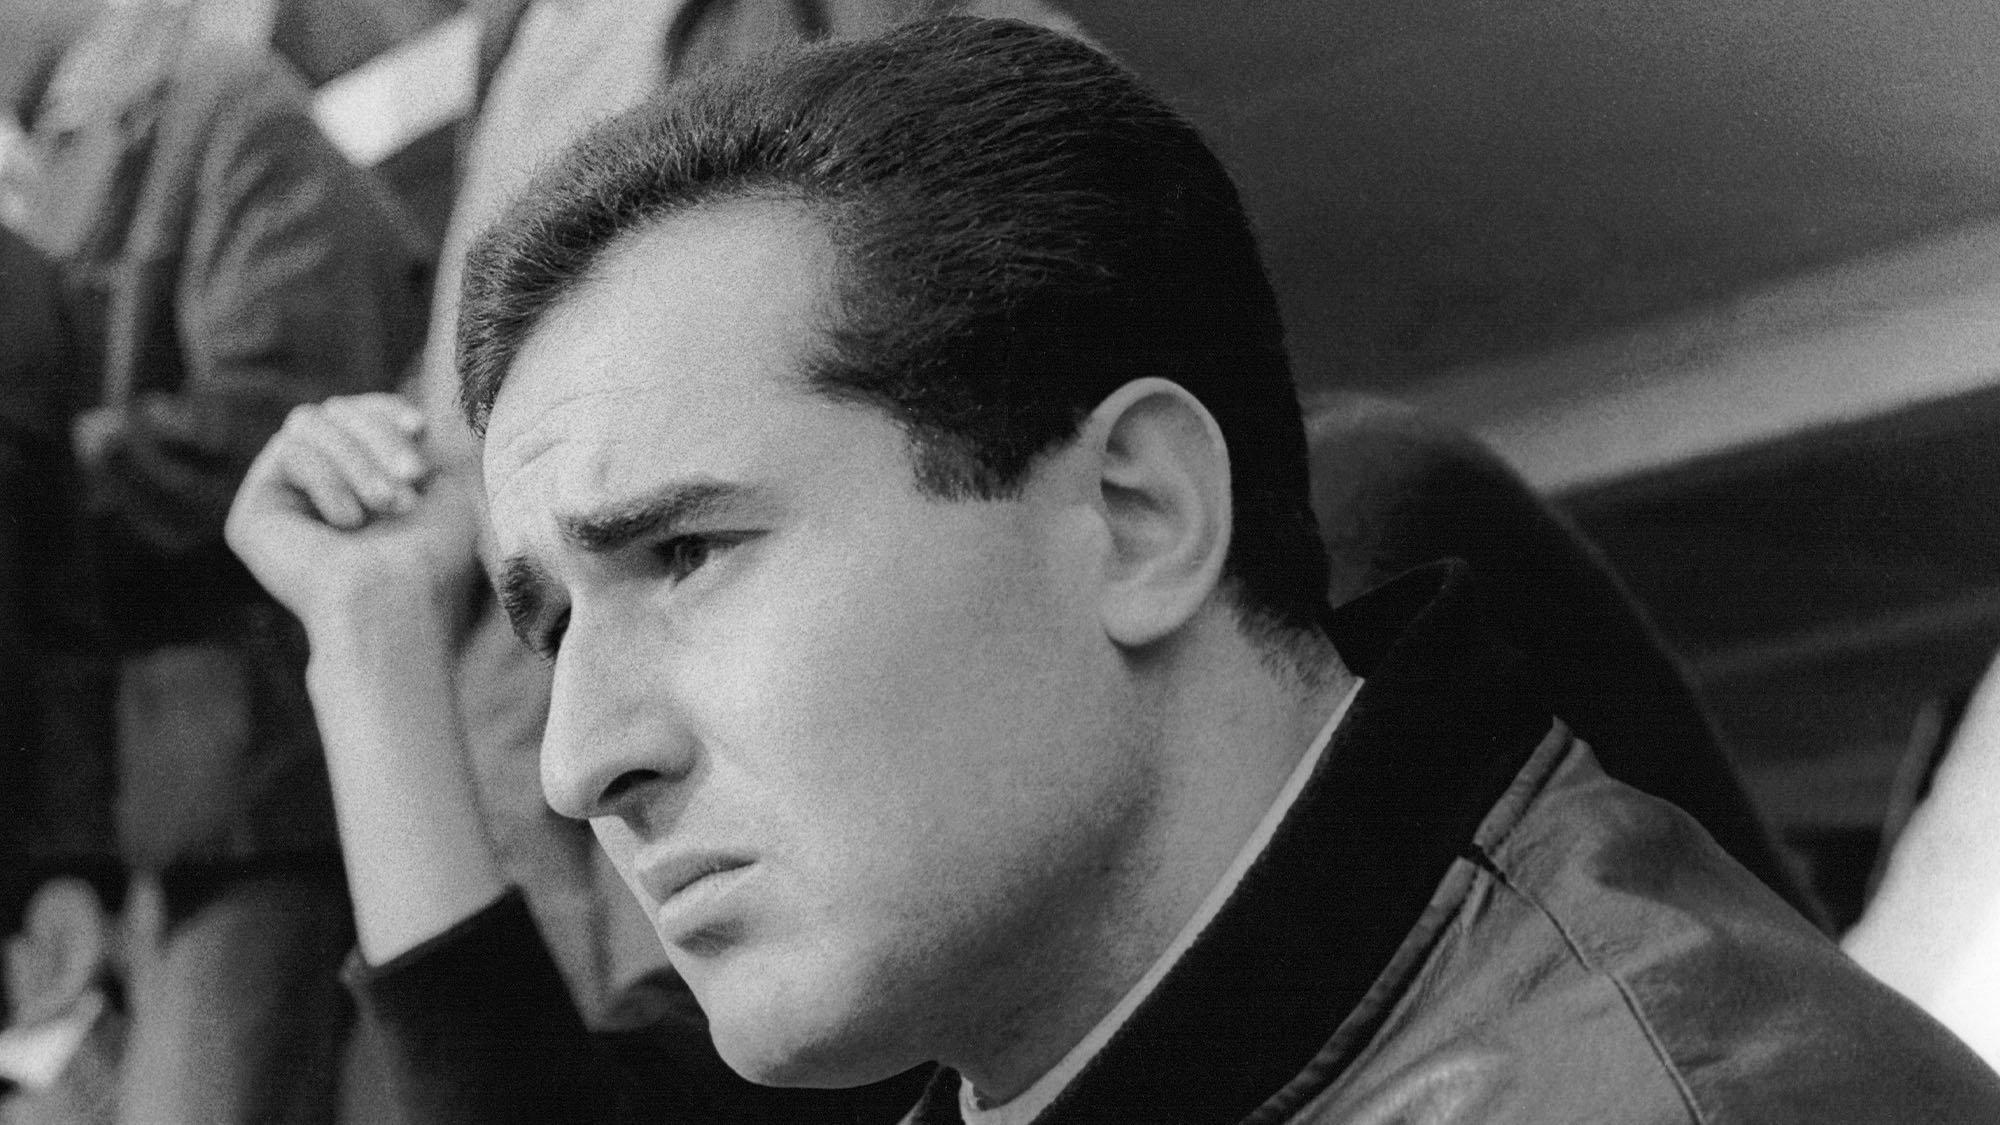 Lorenzo Bandini, 24 Hours of Le Mans, Le Mans, 16 June 1963. (Photo by Bernard Cahier/Getty Images)